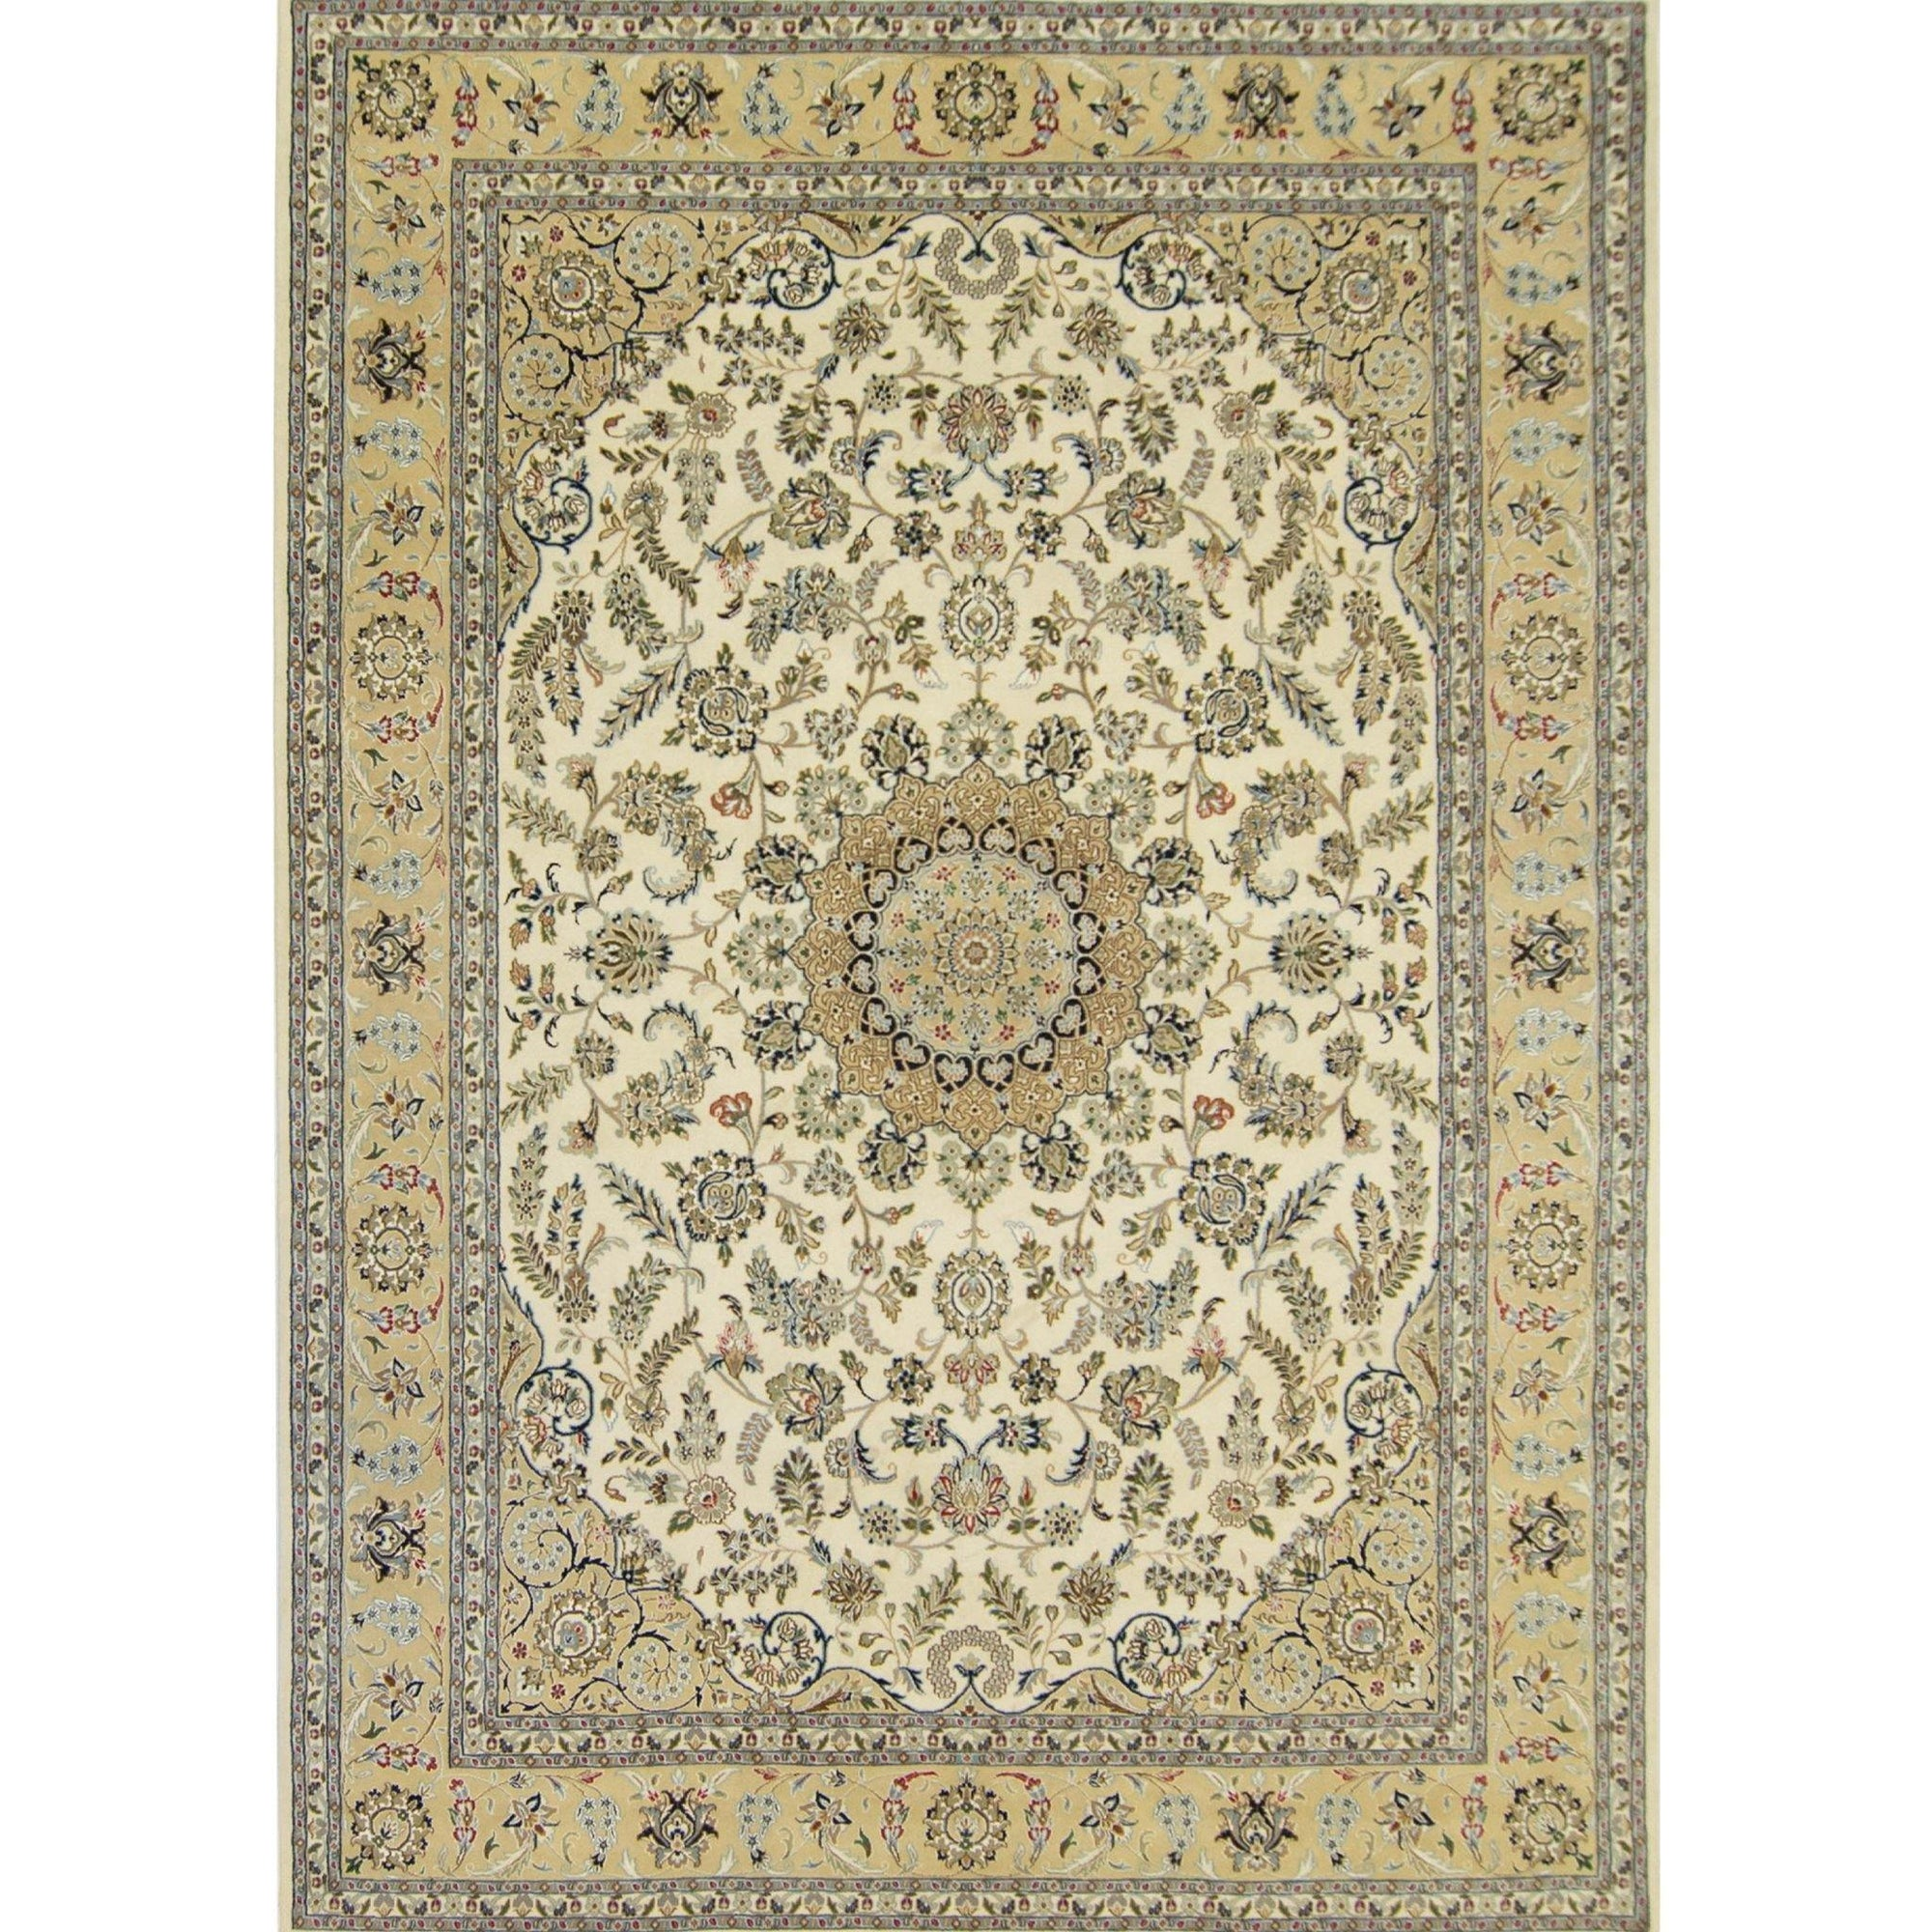 Fine Hand-knotted Wool and Silk Nain Rug 244cm x 366cm Persian-Rug | House-of-Haghi | NewMarket | Auckland | NZ | Handmade Persian Rugs | Hand Knotted Persian Rugs